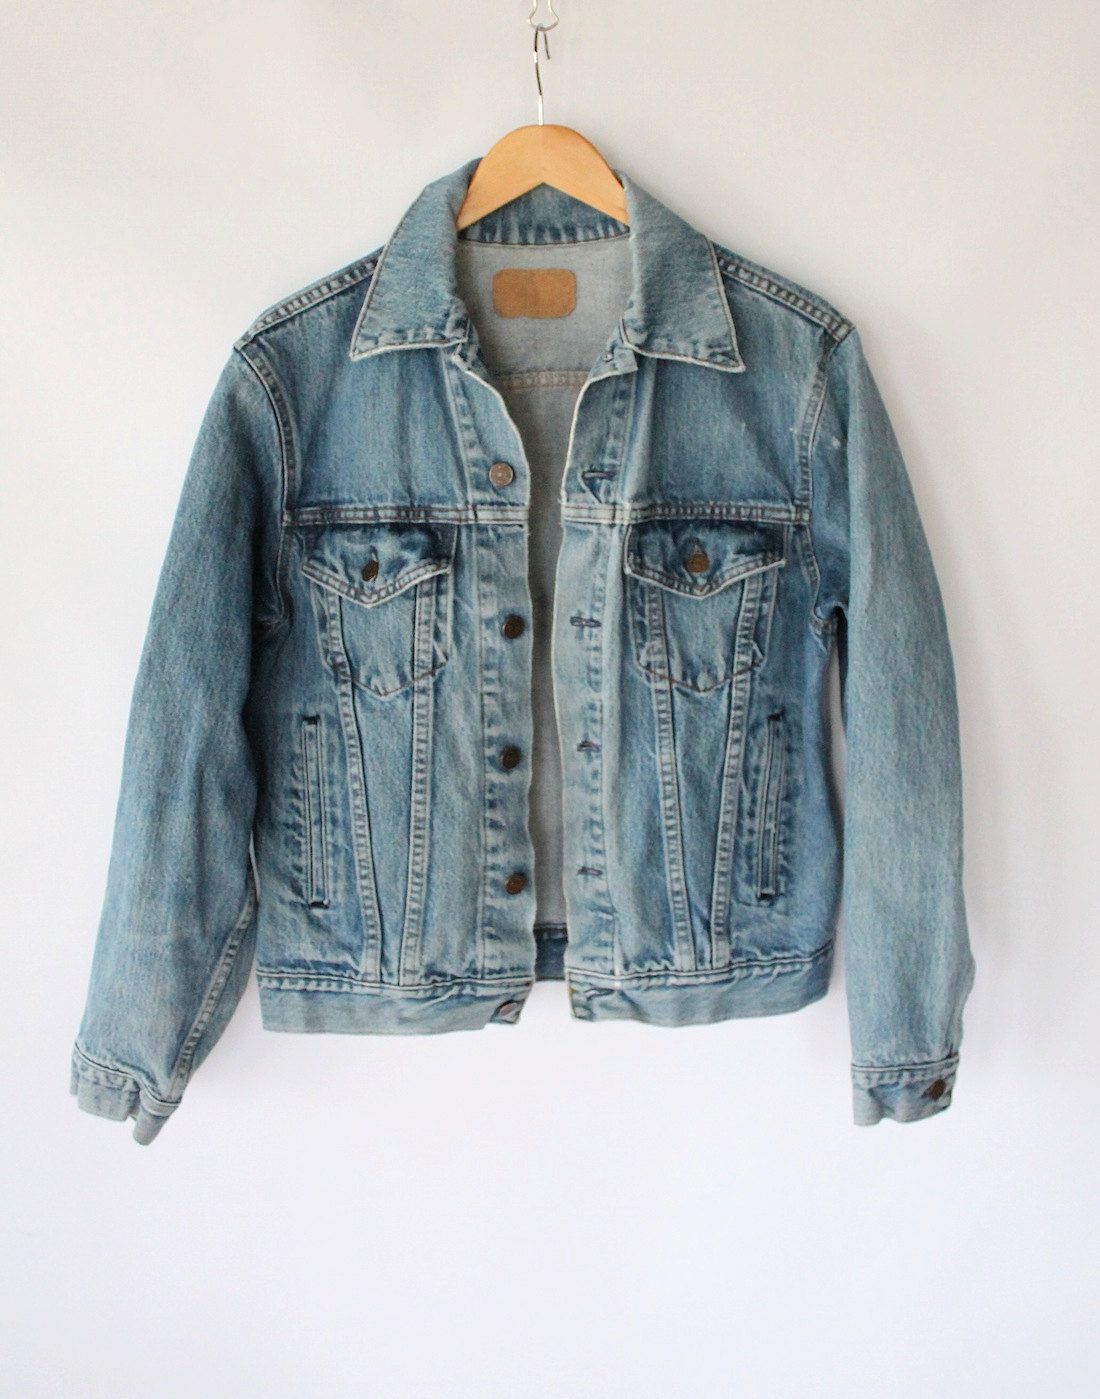 aefe35f3 Vintage 80s Men's Classic Denim Jacket // Blue Jean Jacket Sz Small.  $34.00, via Etsy.